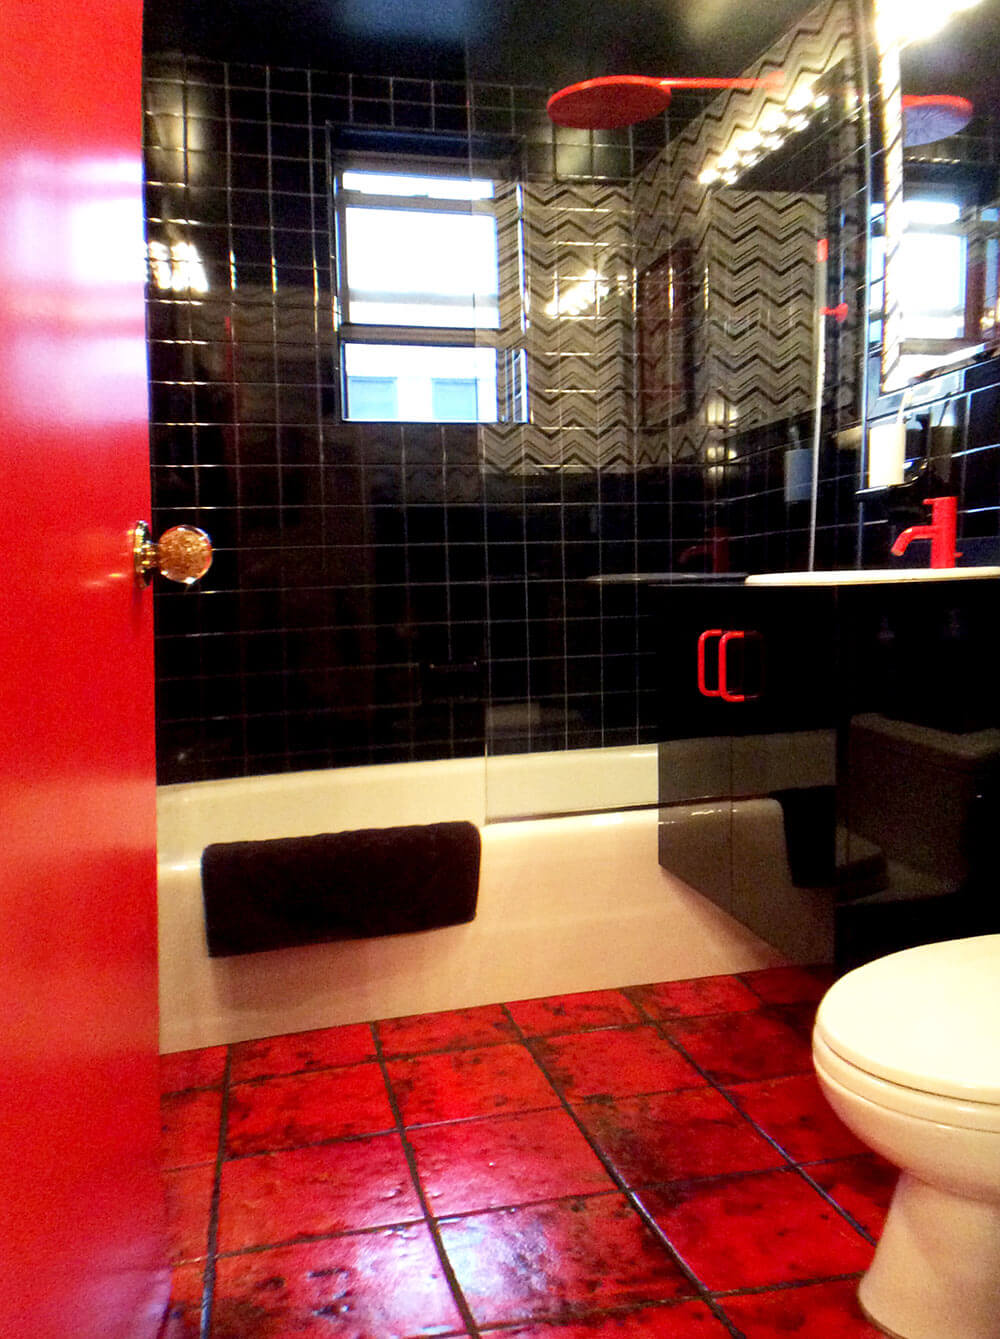 Bathroom Designs Black And Red vola bath and kitchen faucets - designedarne jacobsen in the